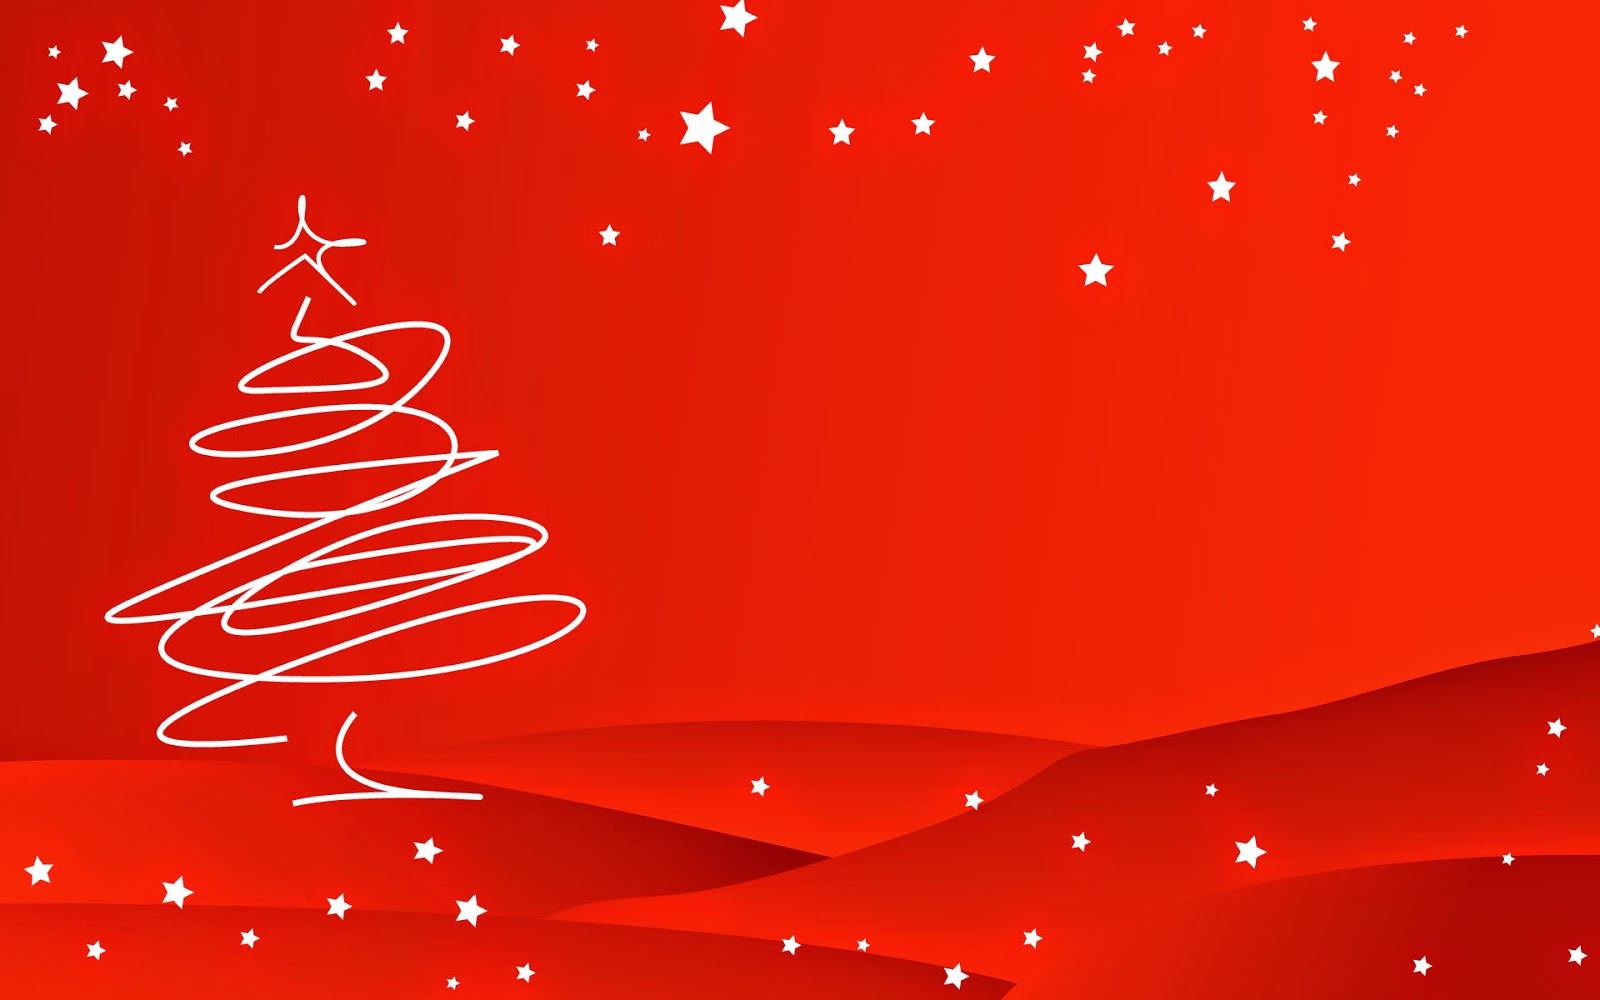 Sad Girl Sitting Alone Hd Wallpapers Christmas Tree Abstract Design Images Pixhome